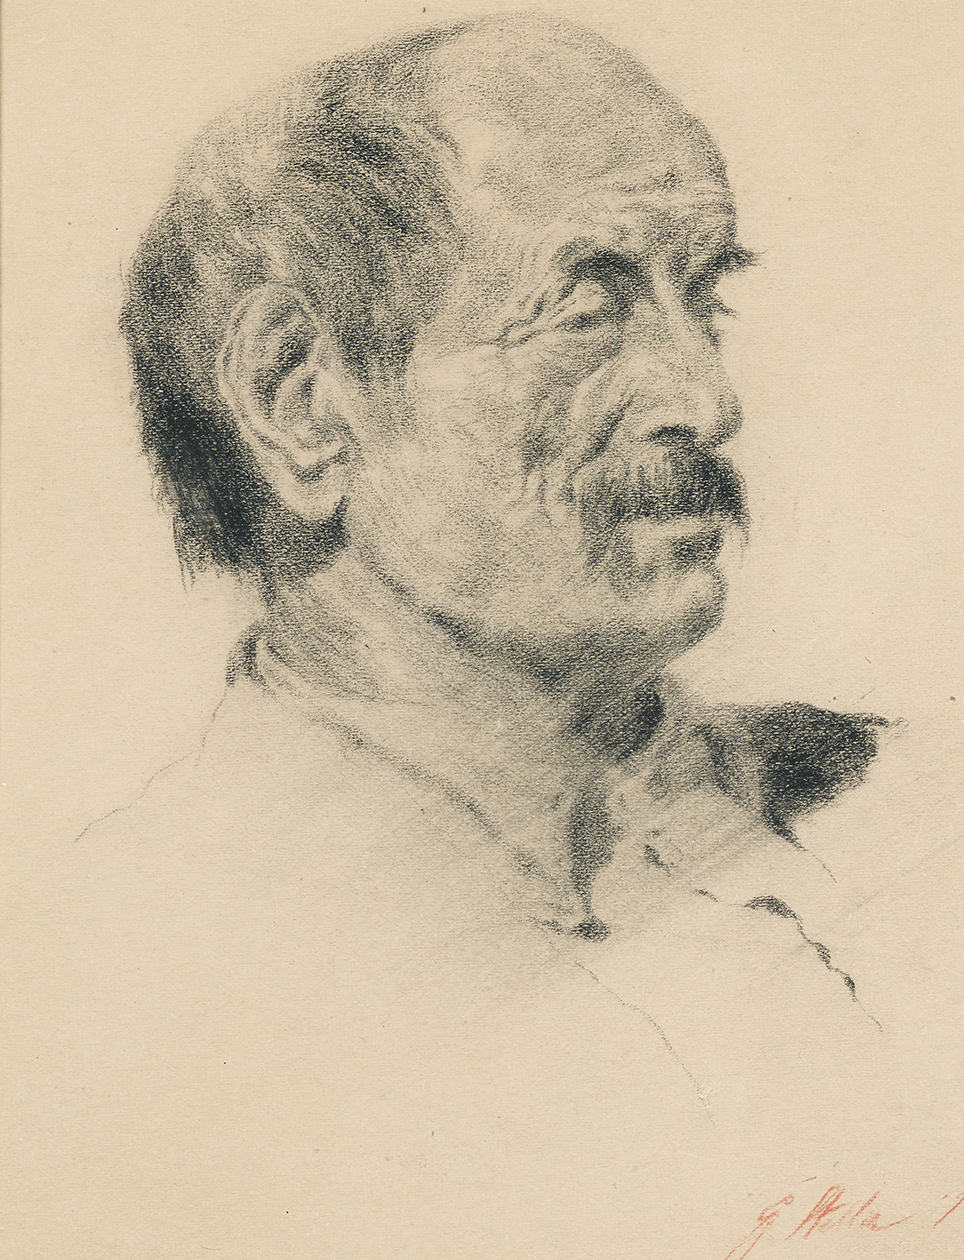 Drawing of the head of man with a mustache